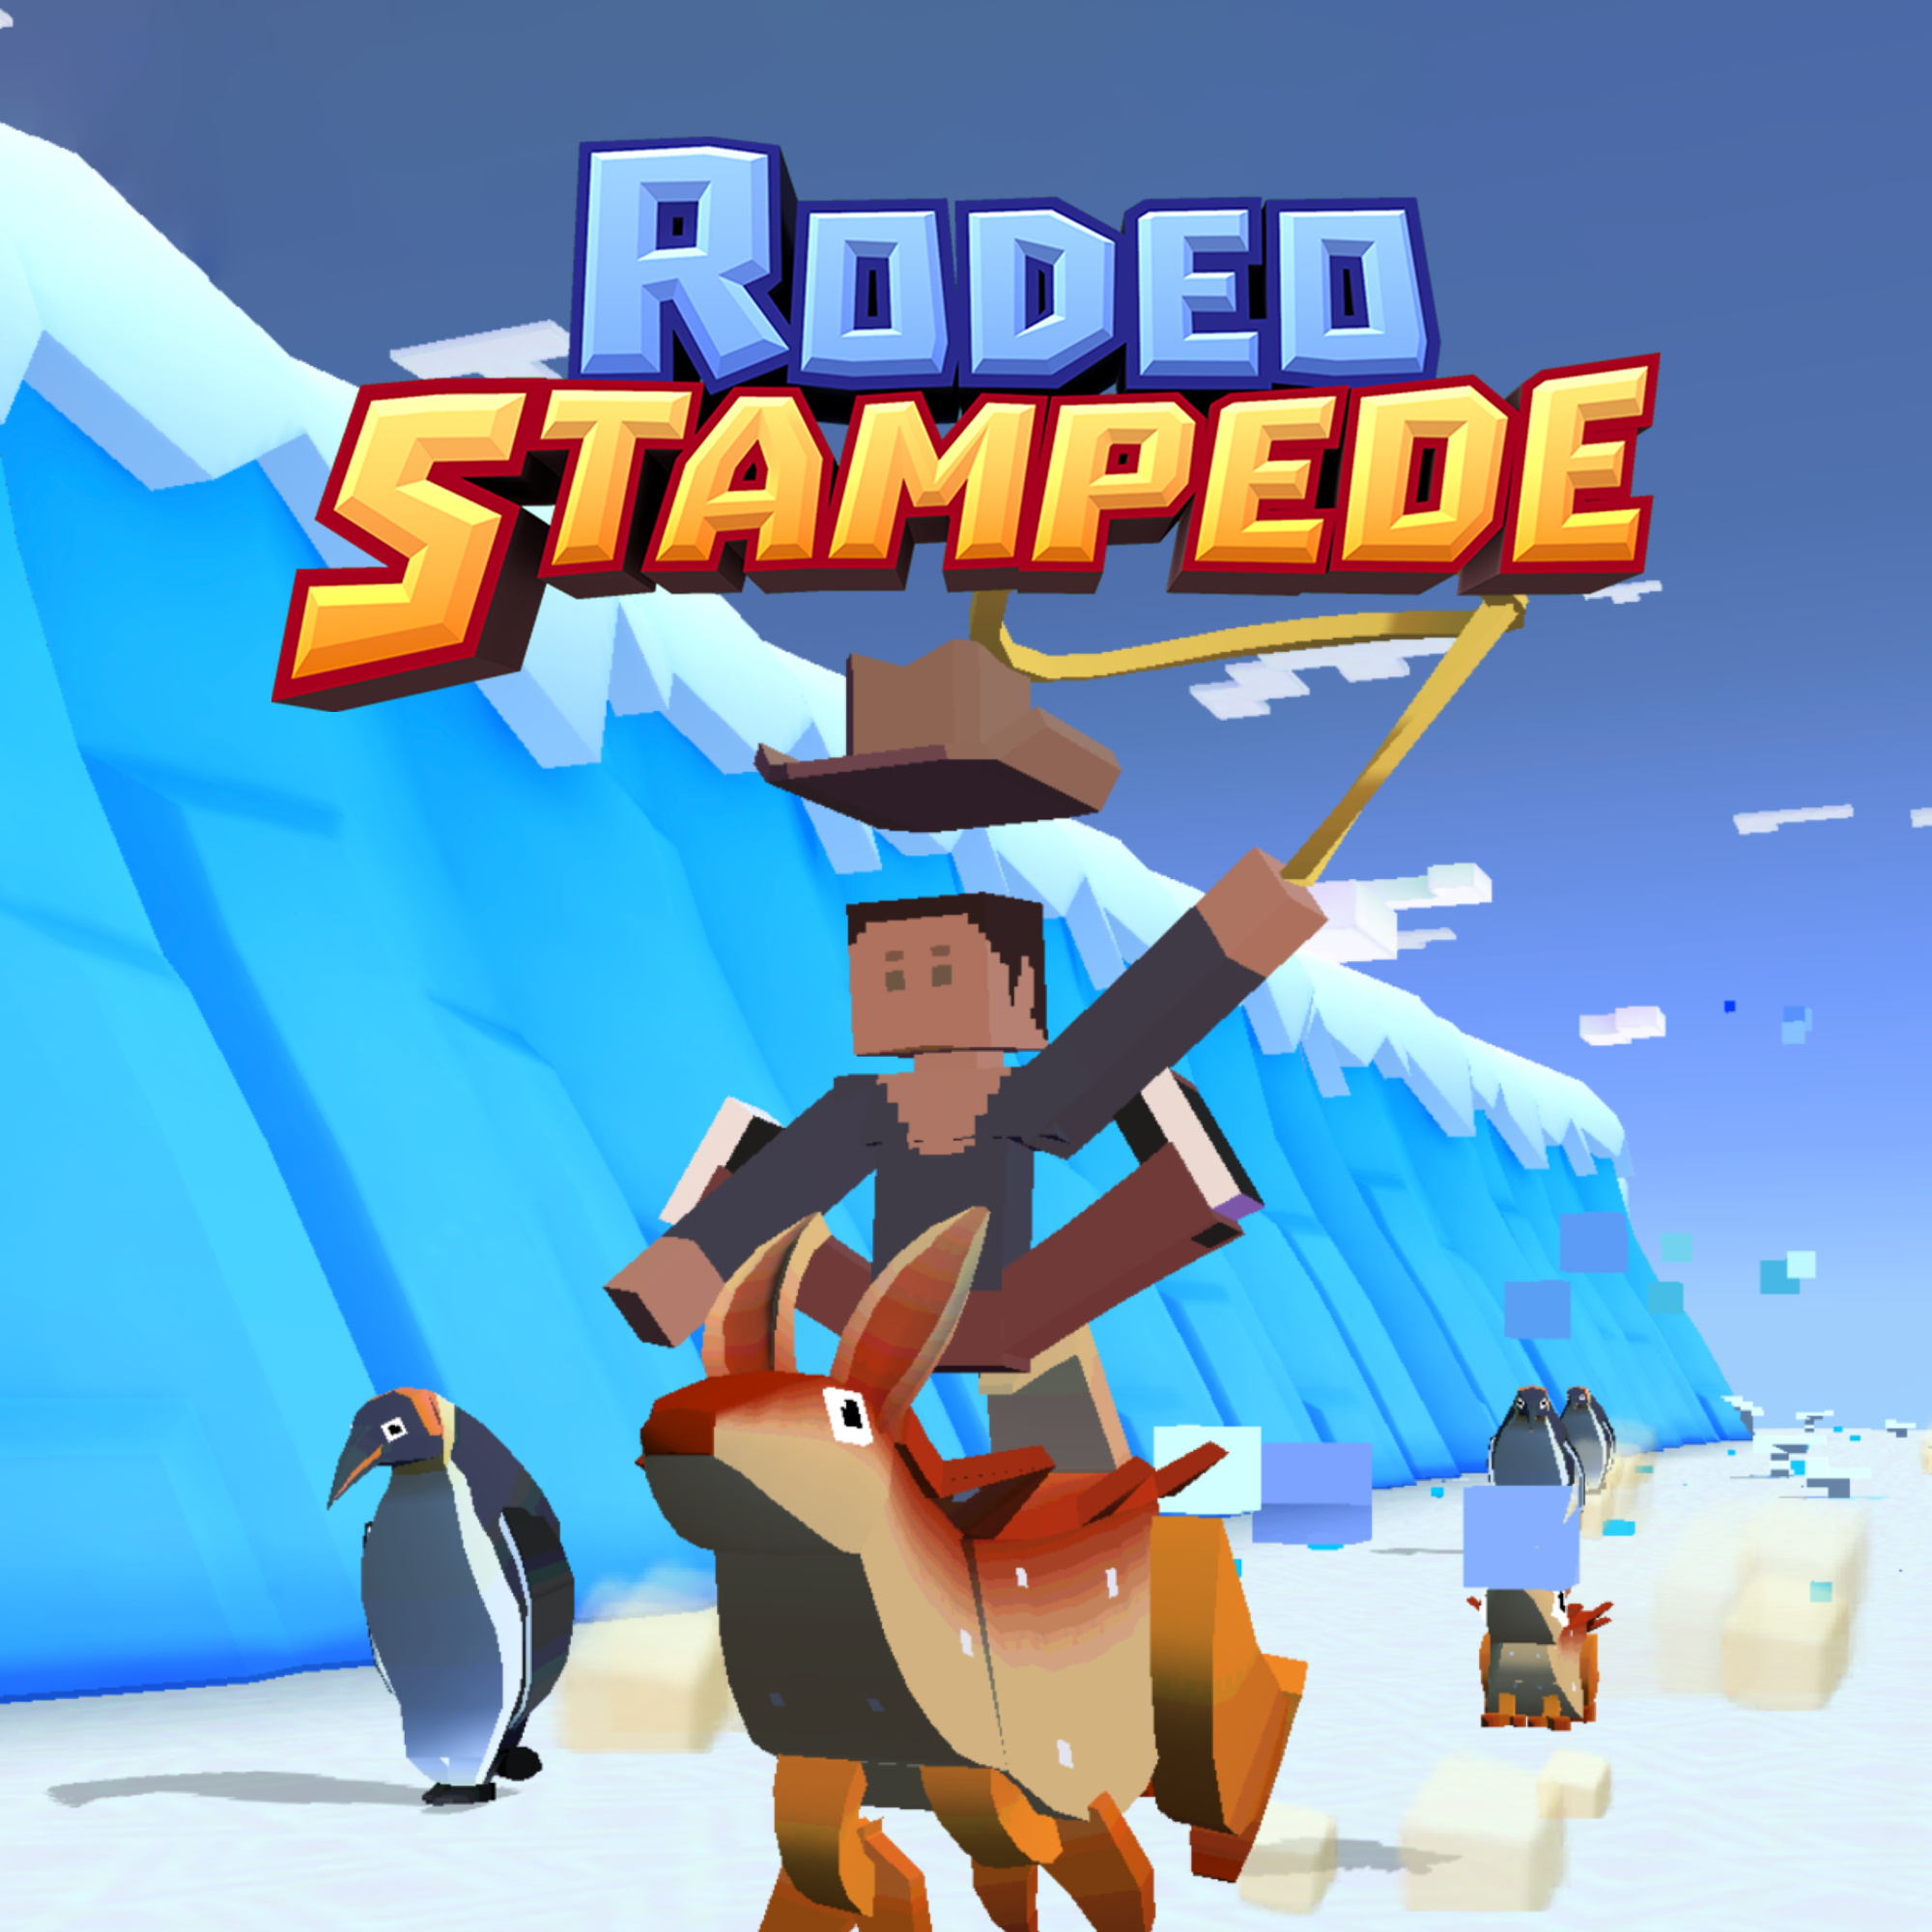 Rodeo Stampede Tundra